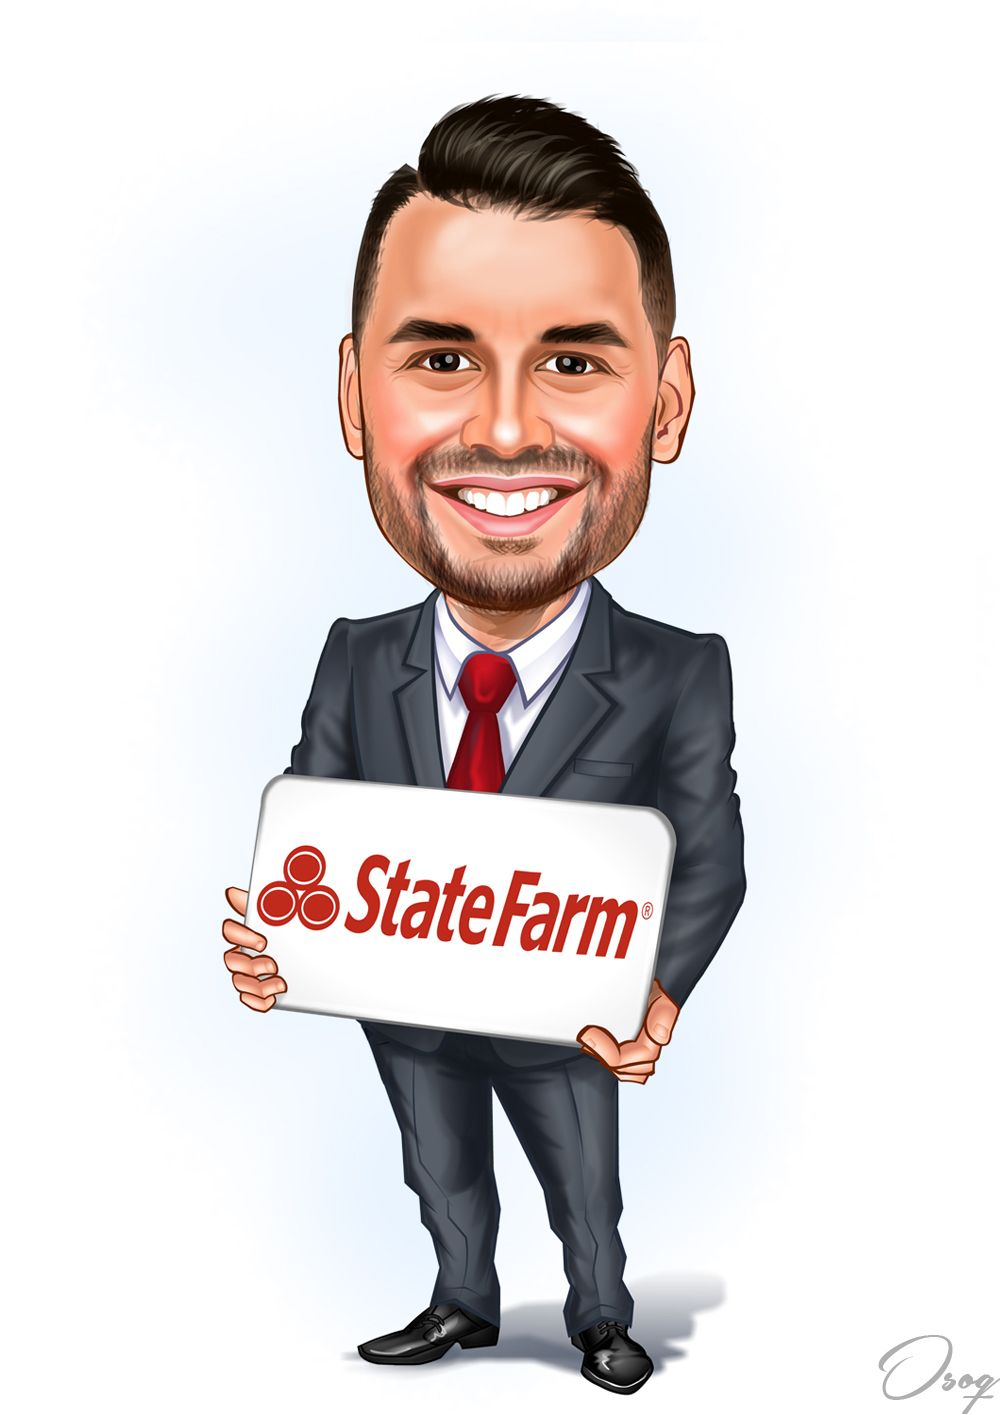 Male, smiling with teeth showing, grey suit and red tie. State Farm logo. I'm a State Farm Agent and I'm looking to differentiate myself to clients through Agent branding.